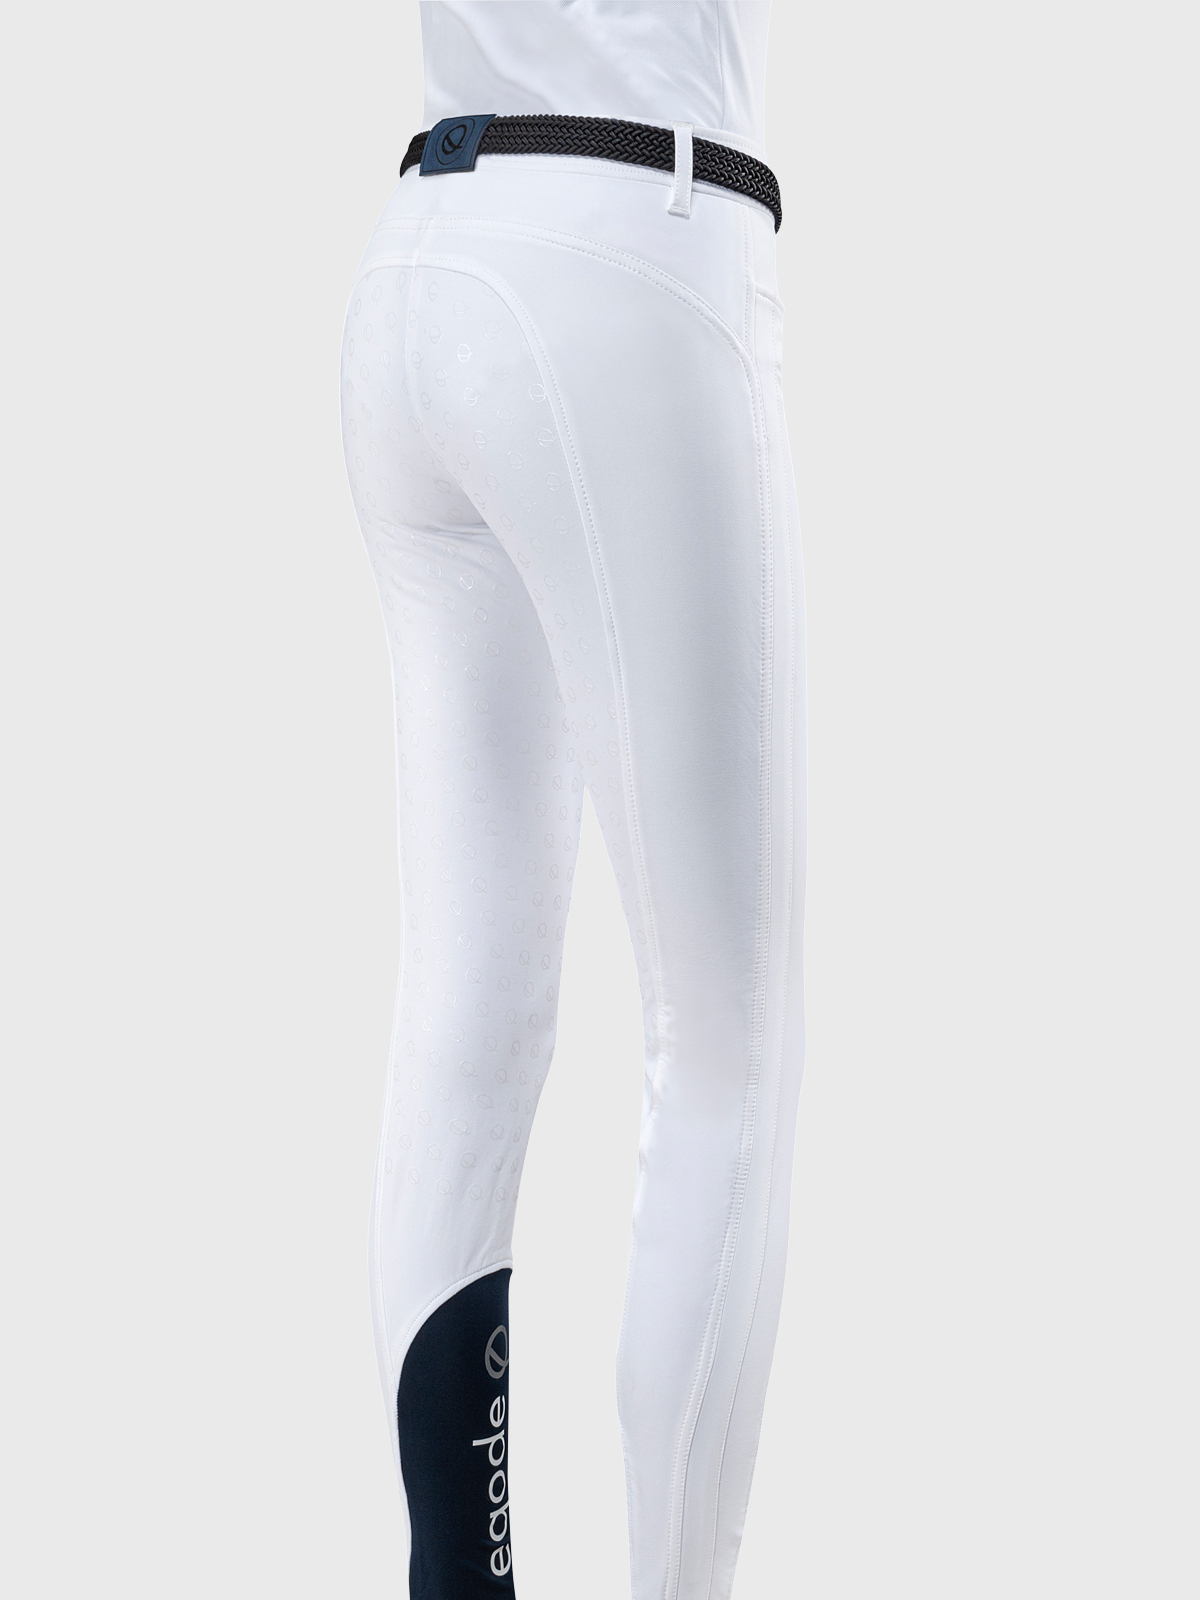 EQODE WOMEN'S BREECHES WITH FULL SEAT GRIP 6